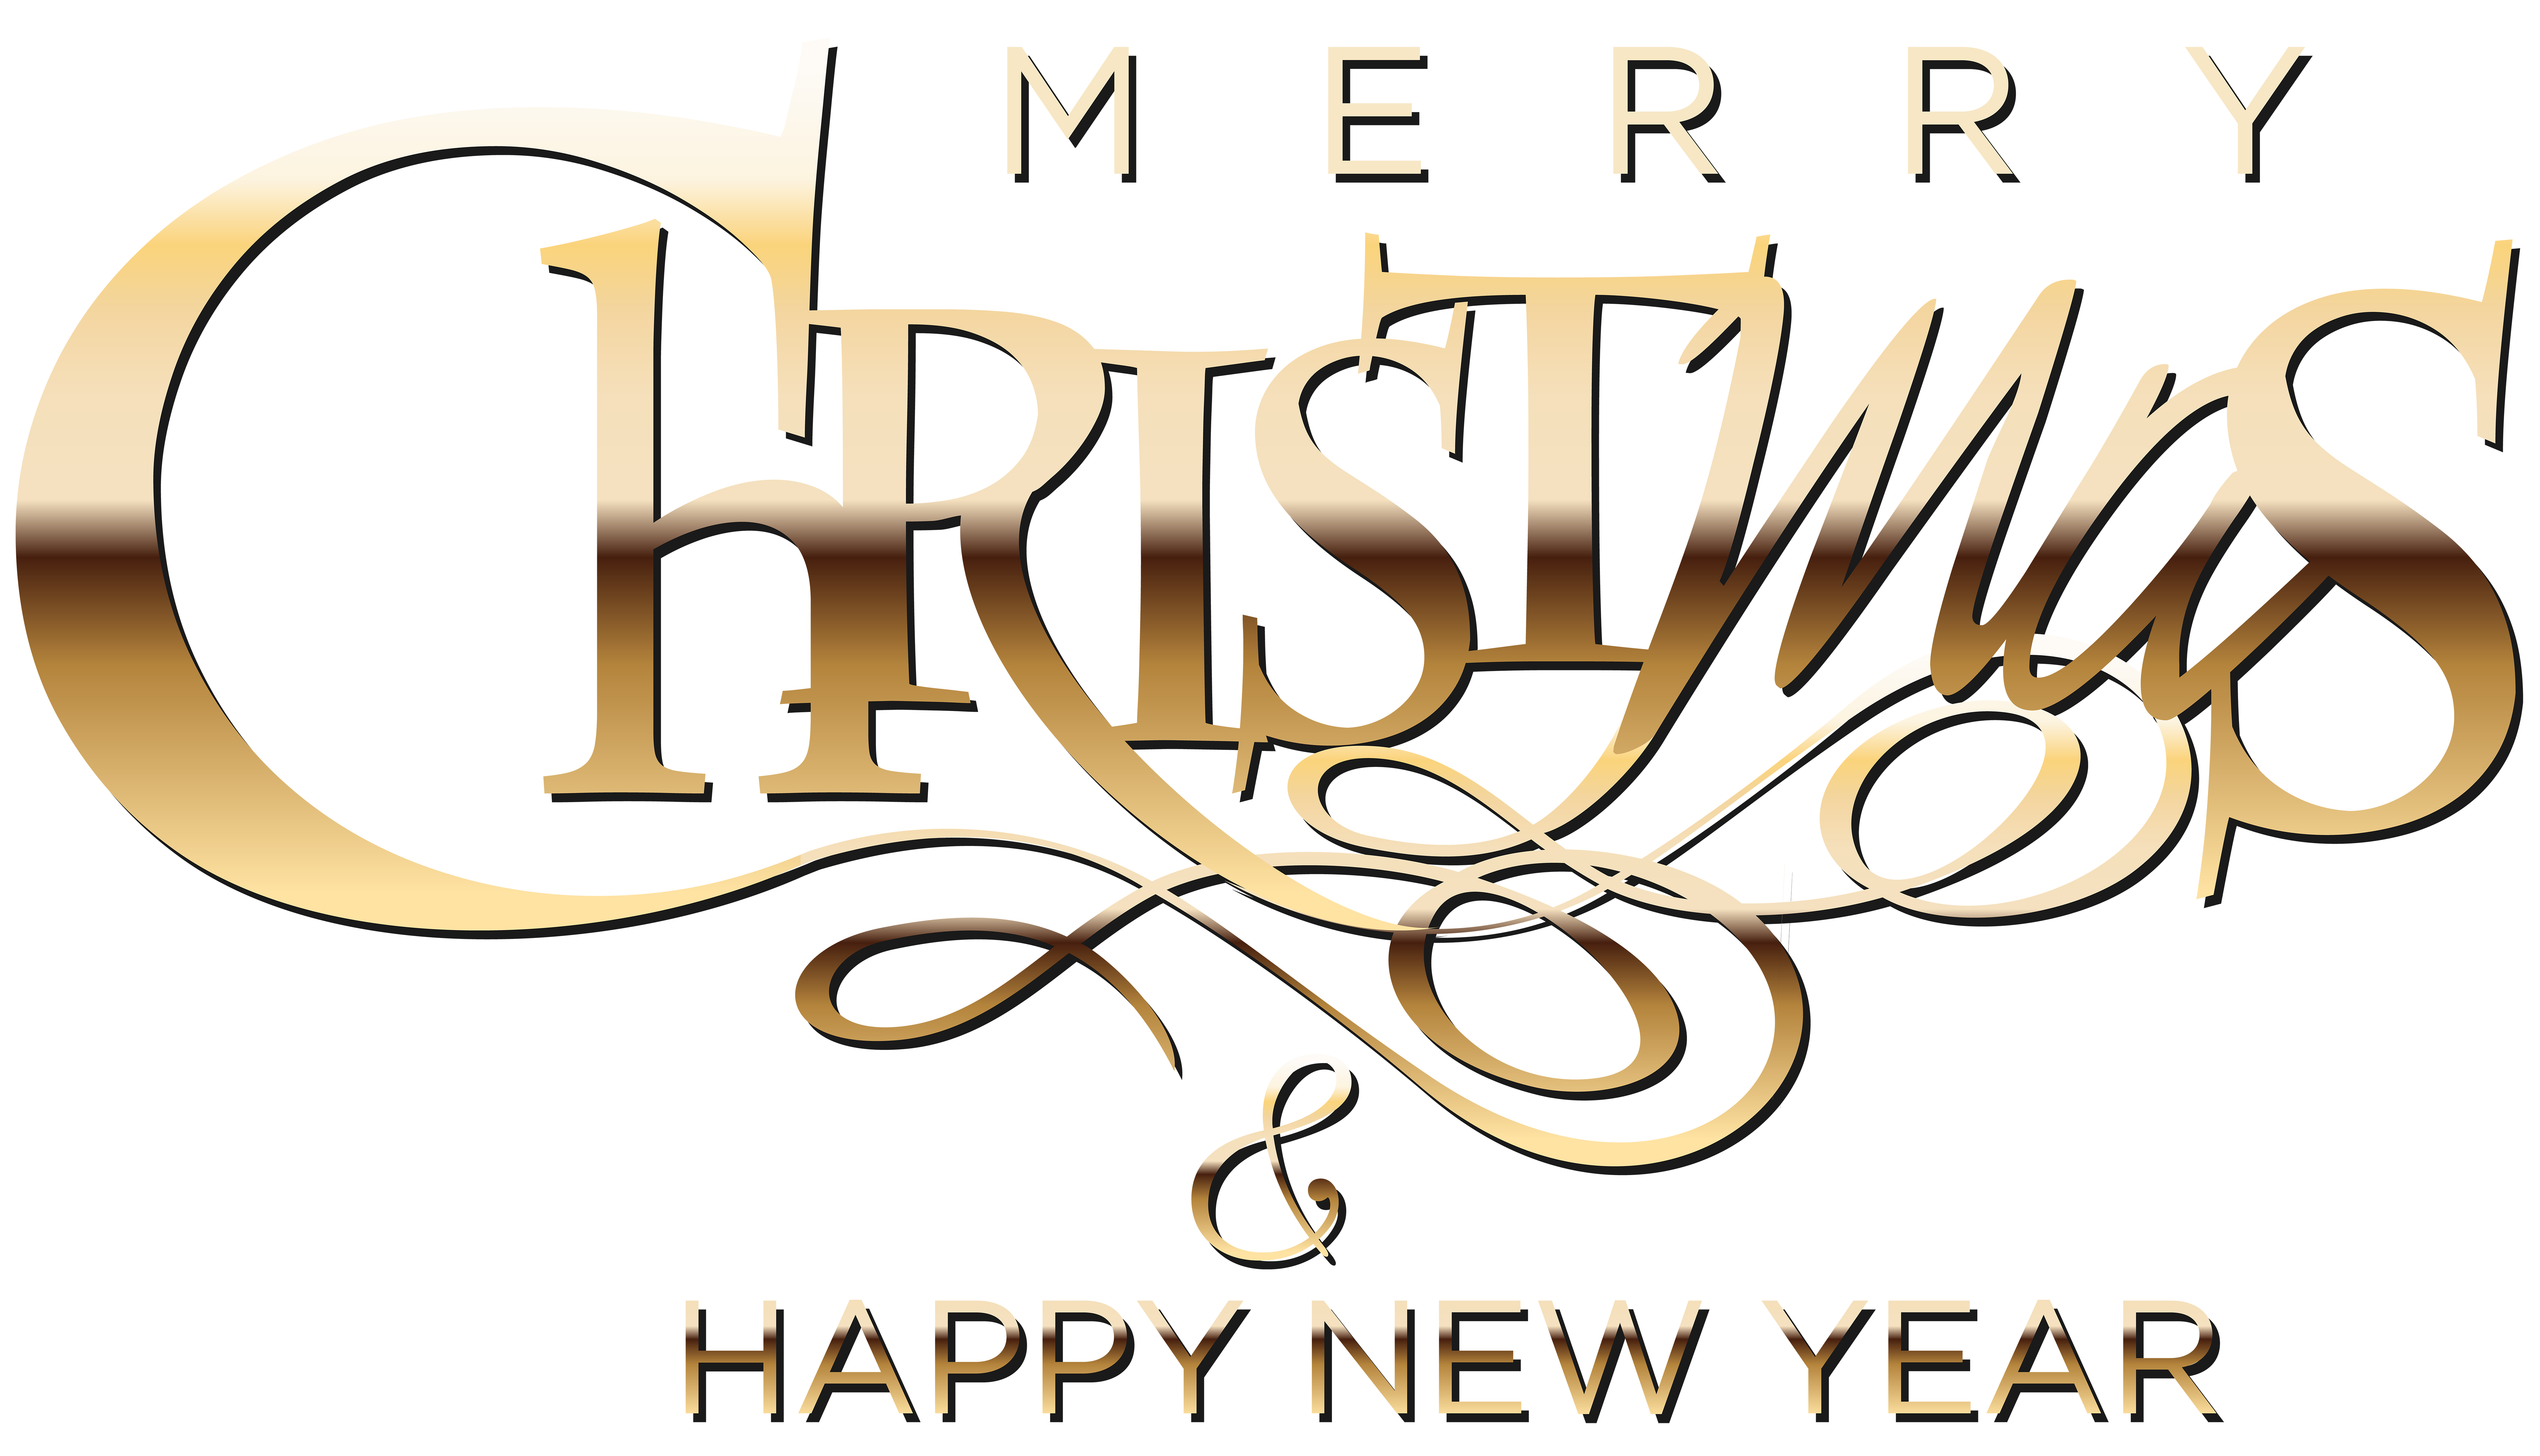 Merry christmas and happy new year clipart clip art free library Merry Christmas and Happy New Year Clip Art Image   Gallery ... clip art free library